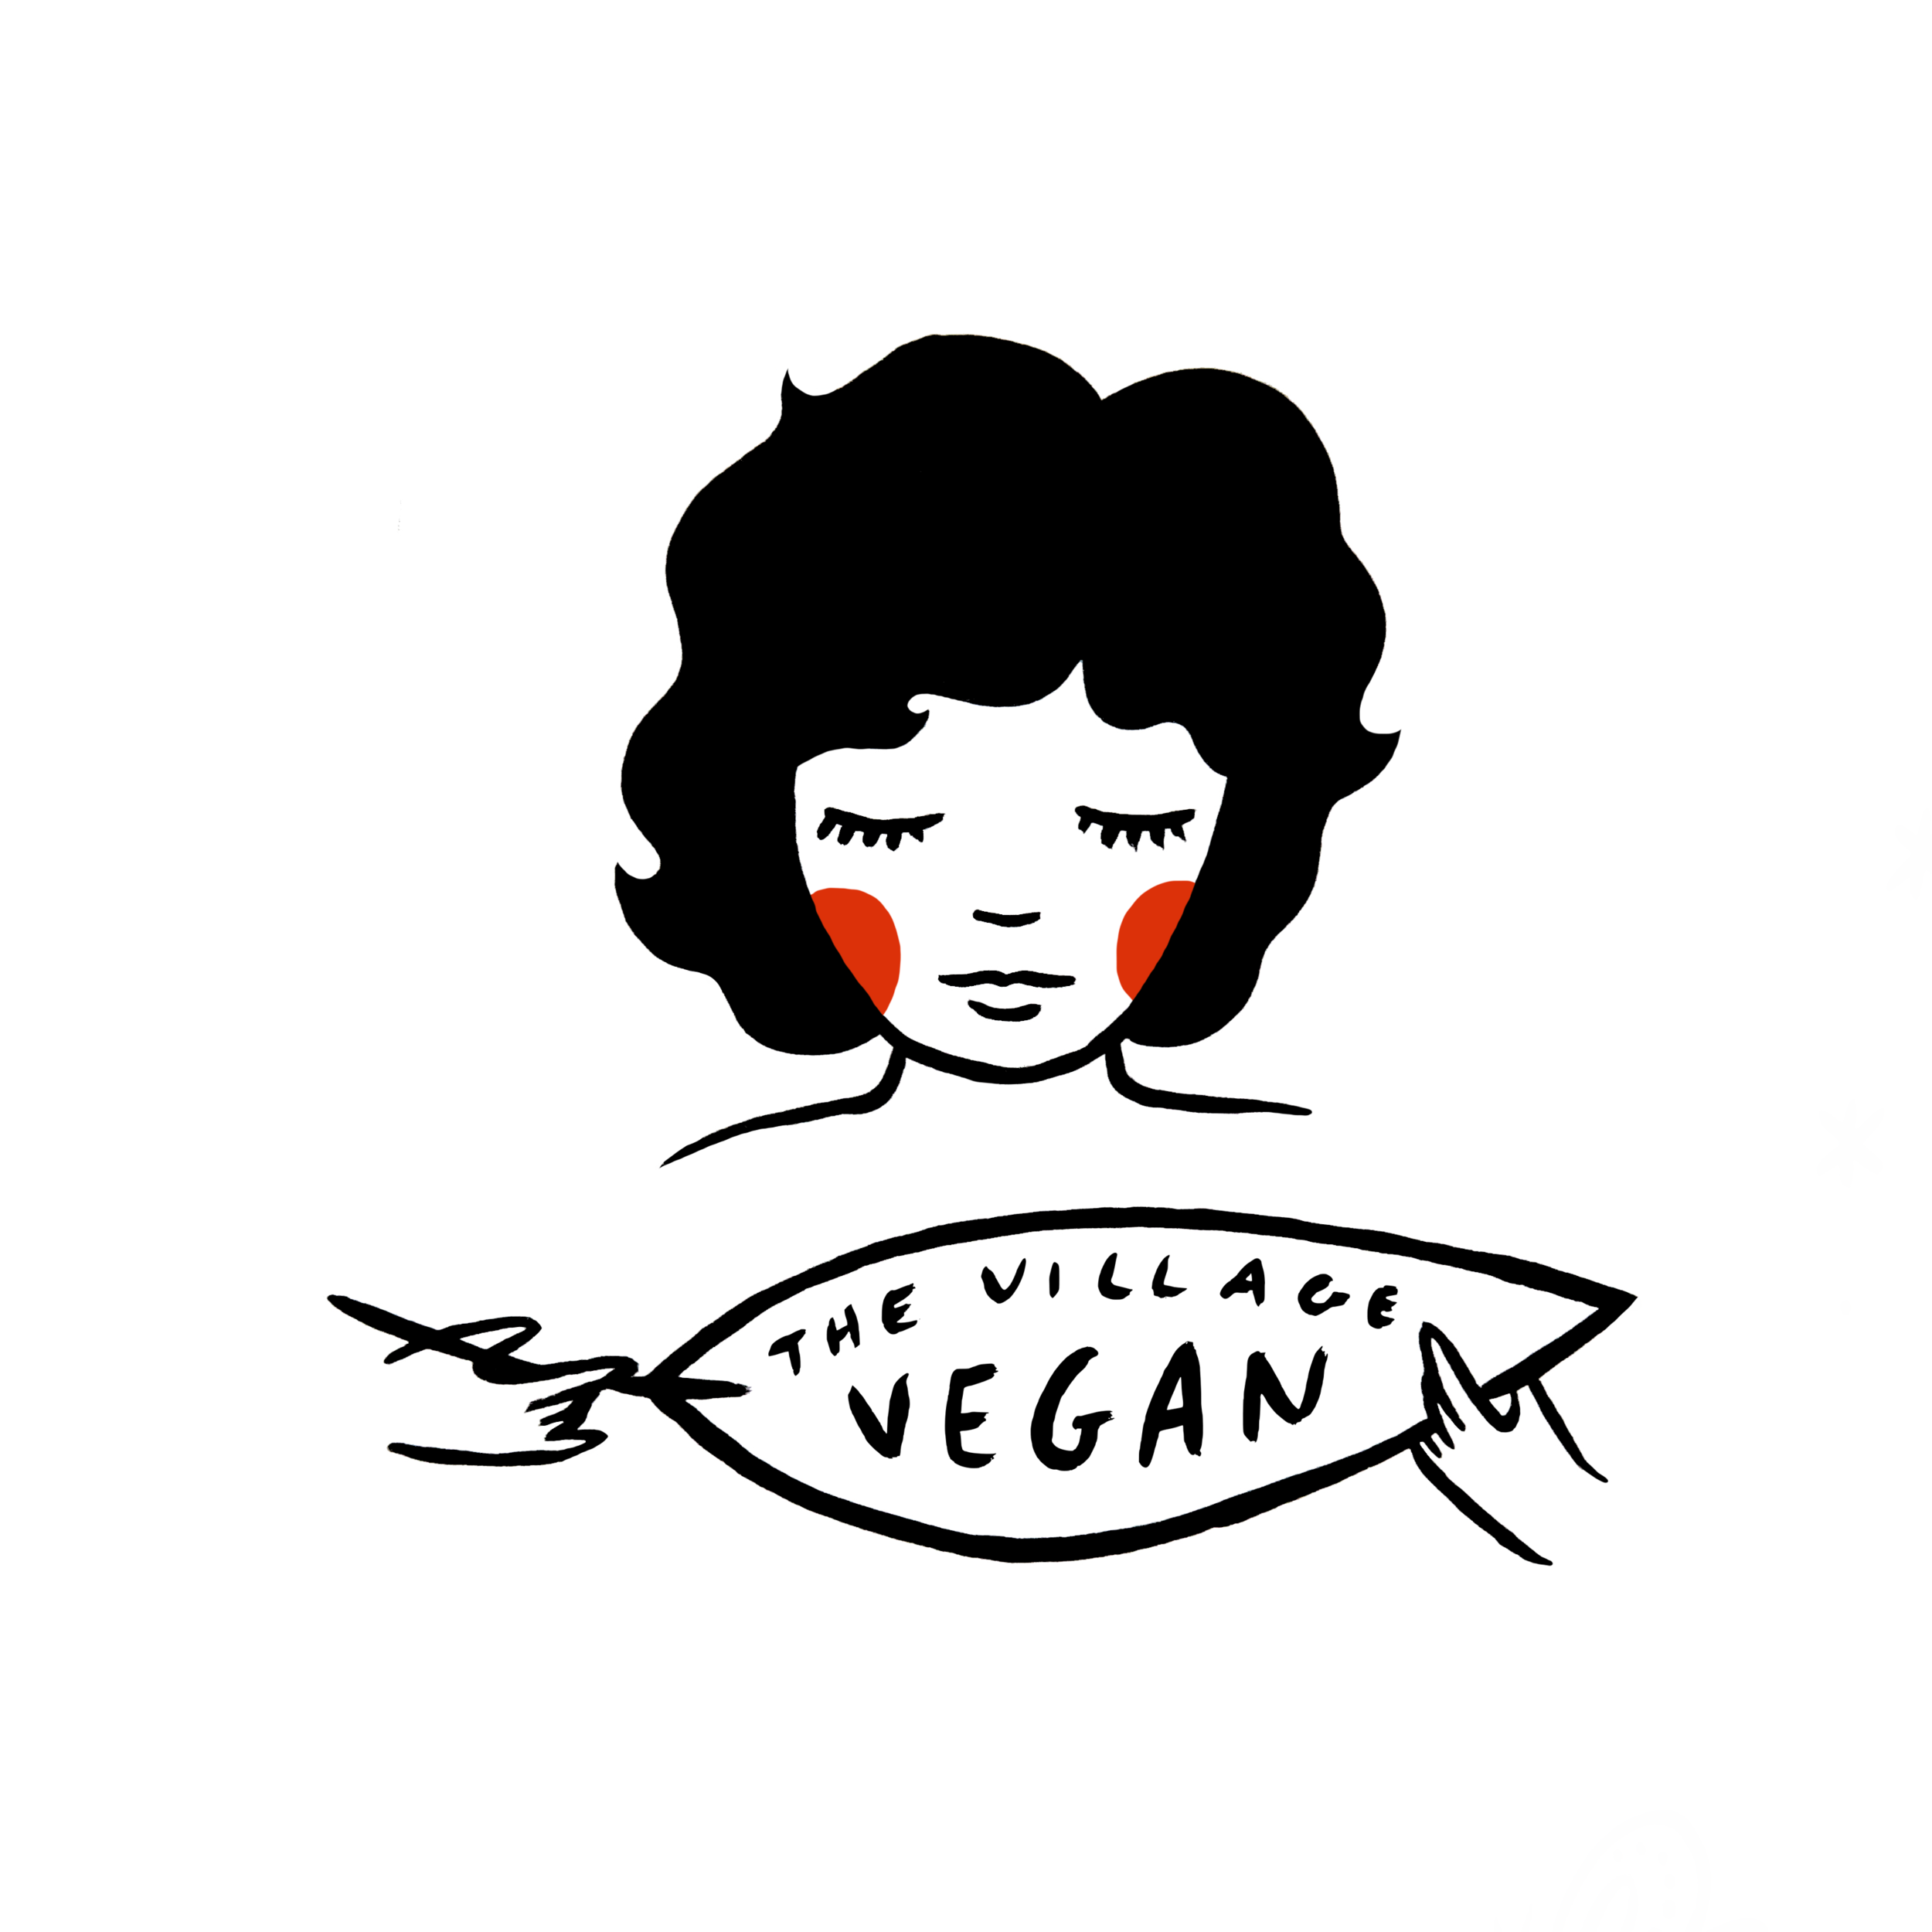 custom bakery character vegan hand painted illustration by em randall